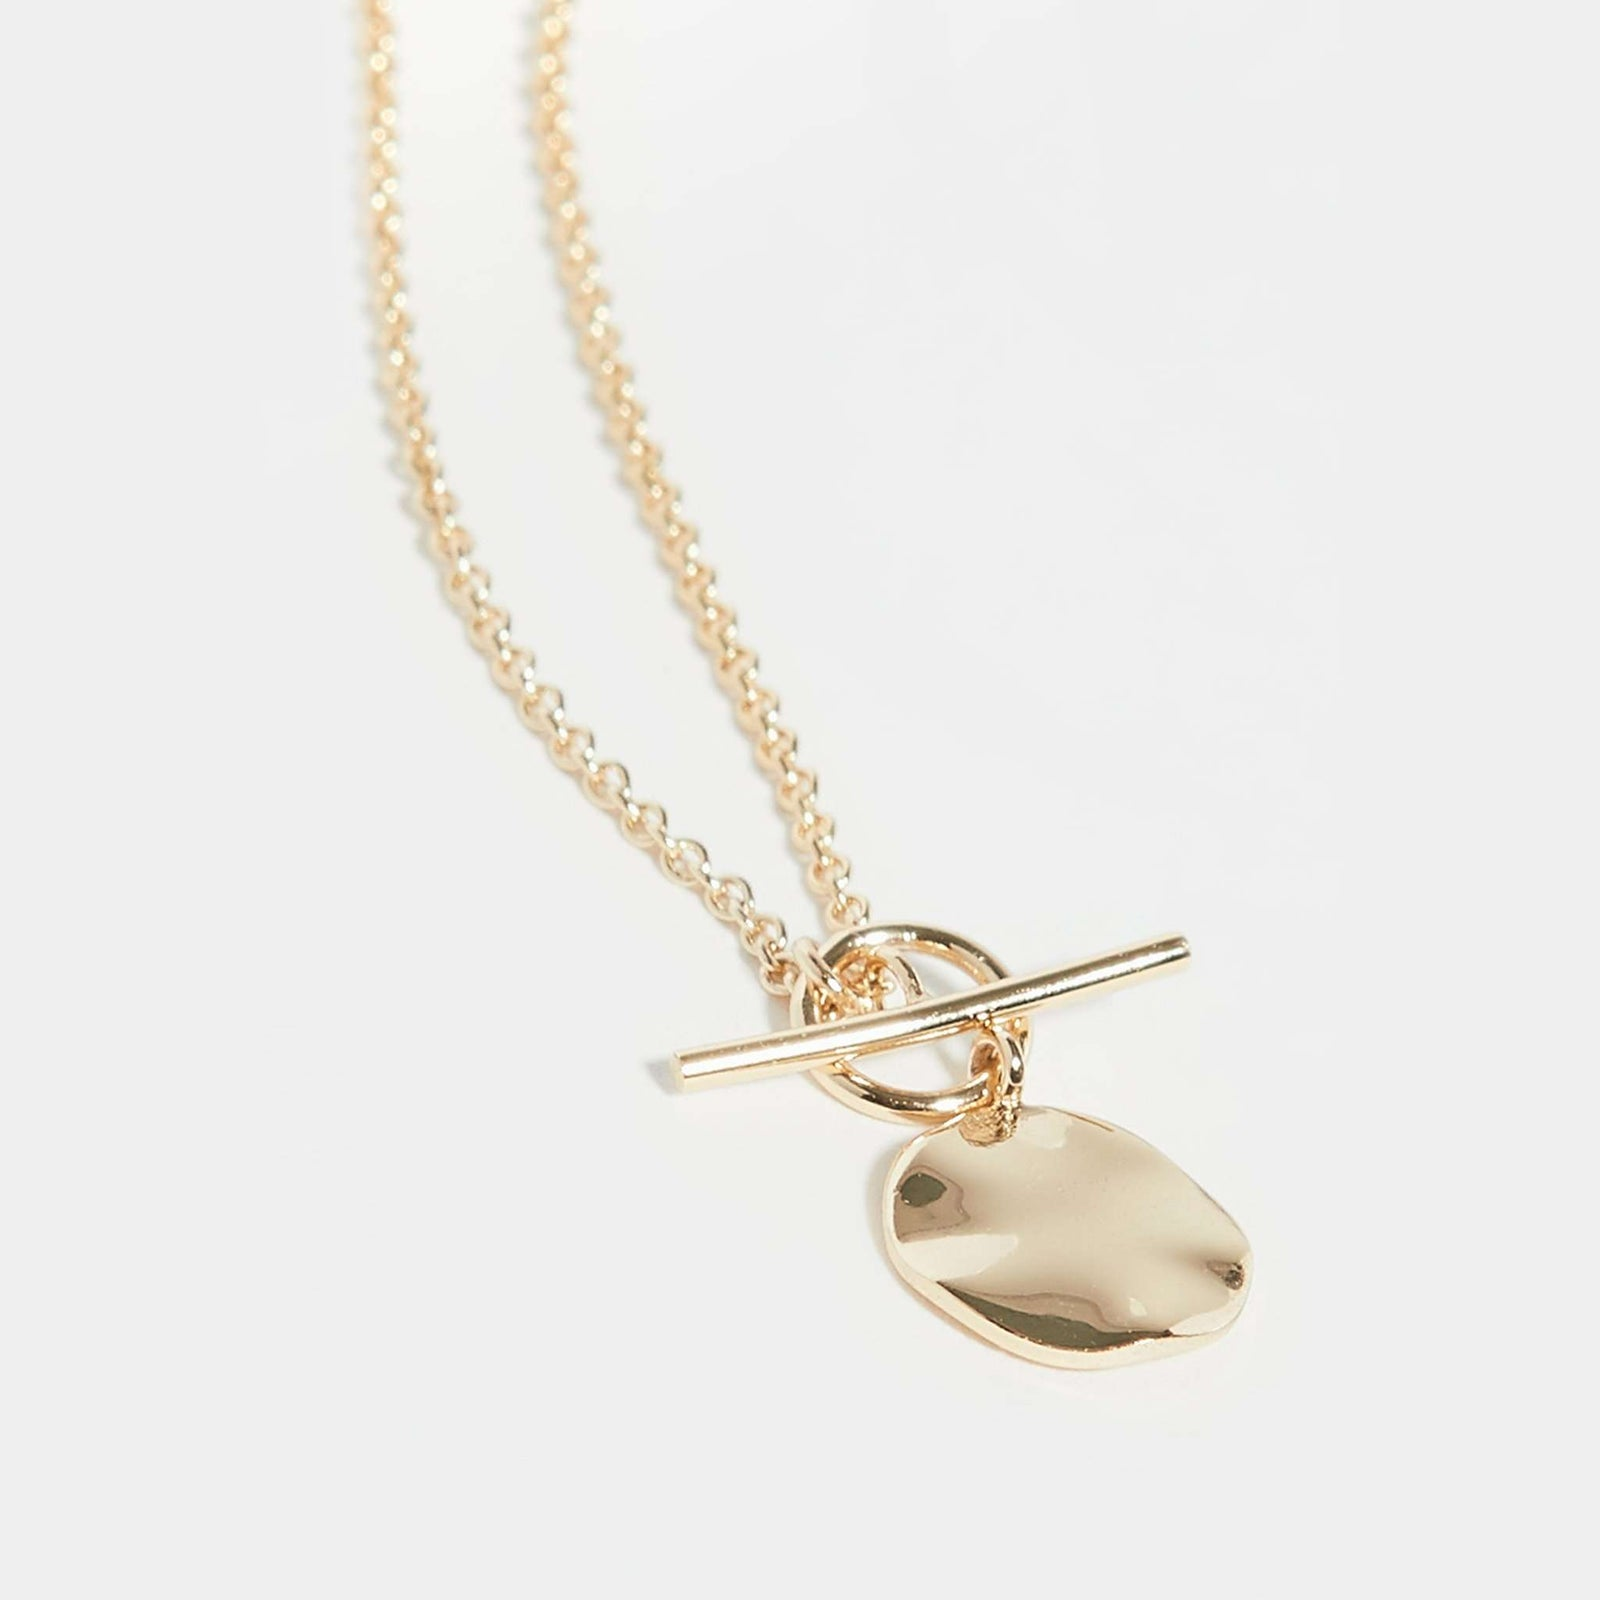 Image result for shashi etoile necklace - Pretty Necklaces Under $100 - Everyday From A